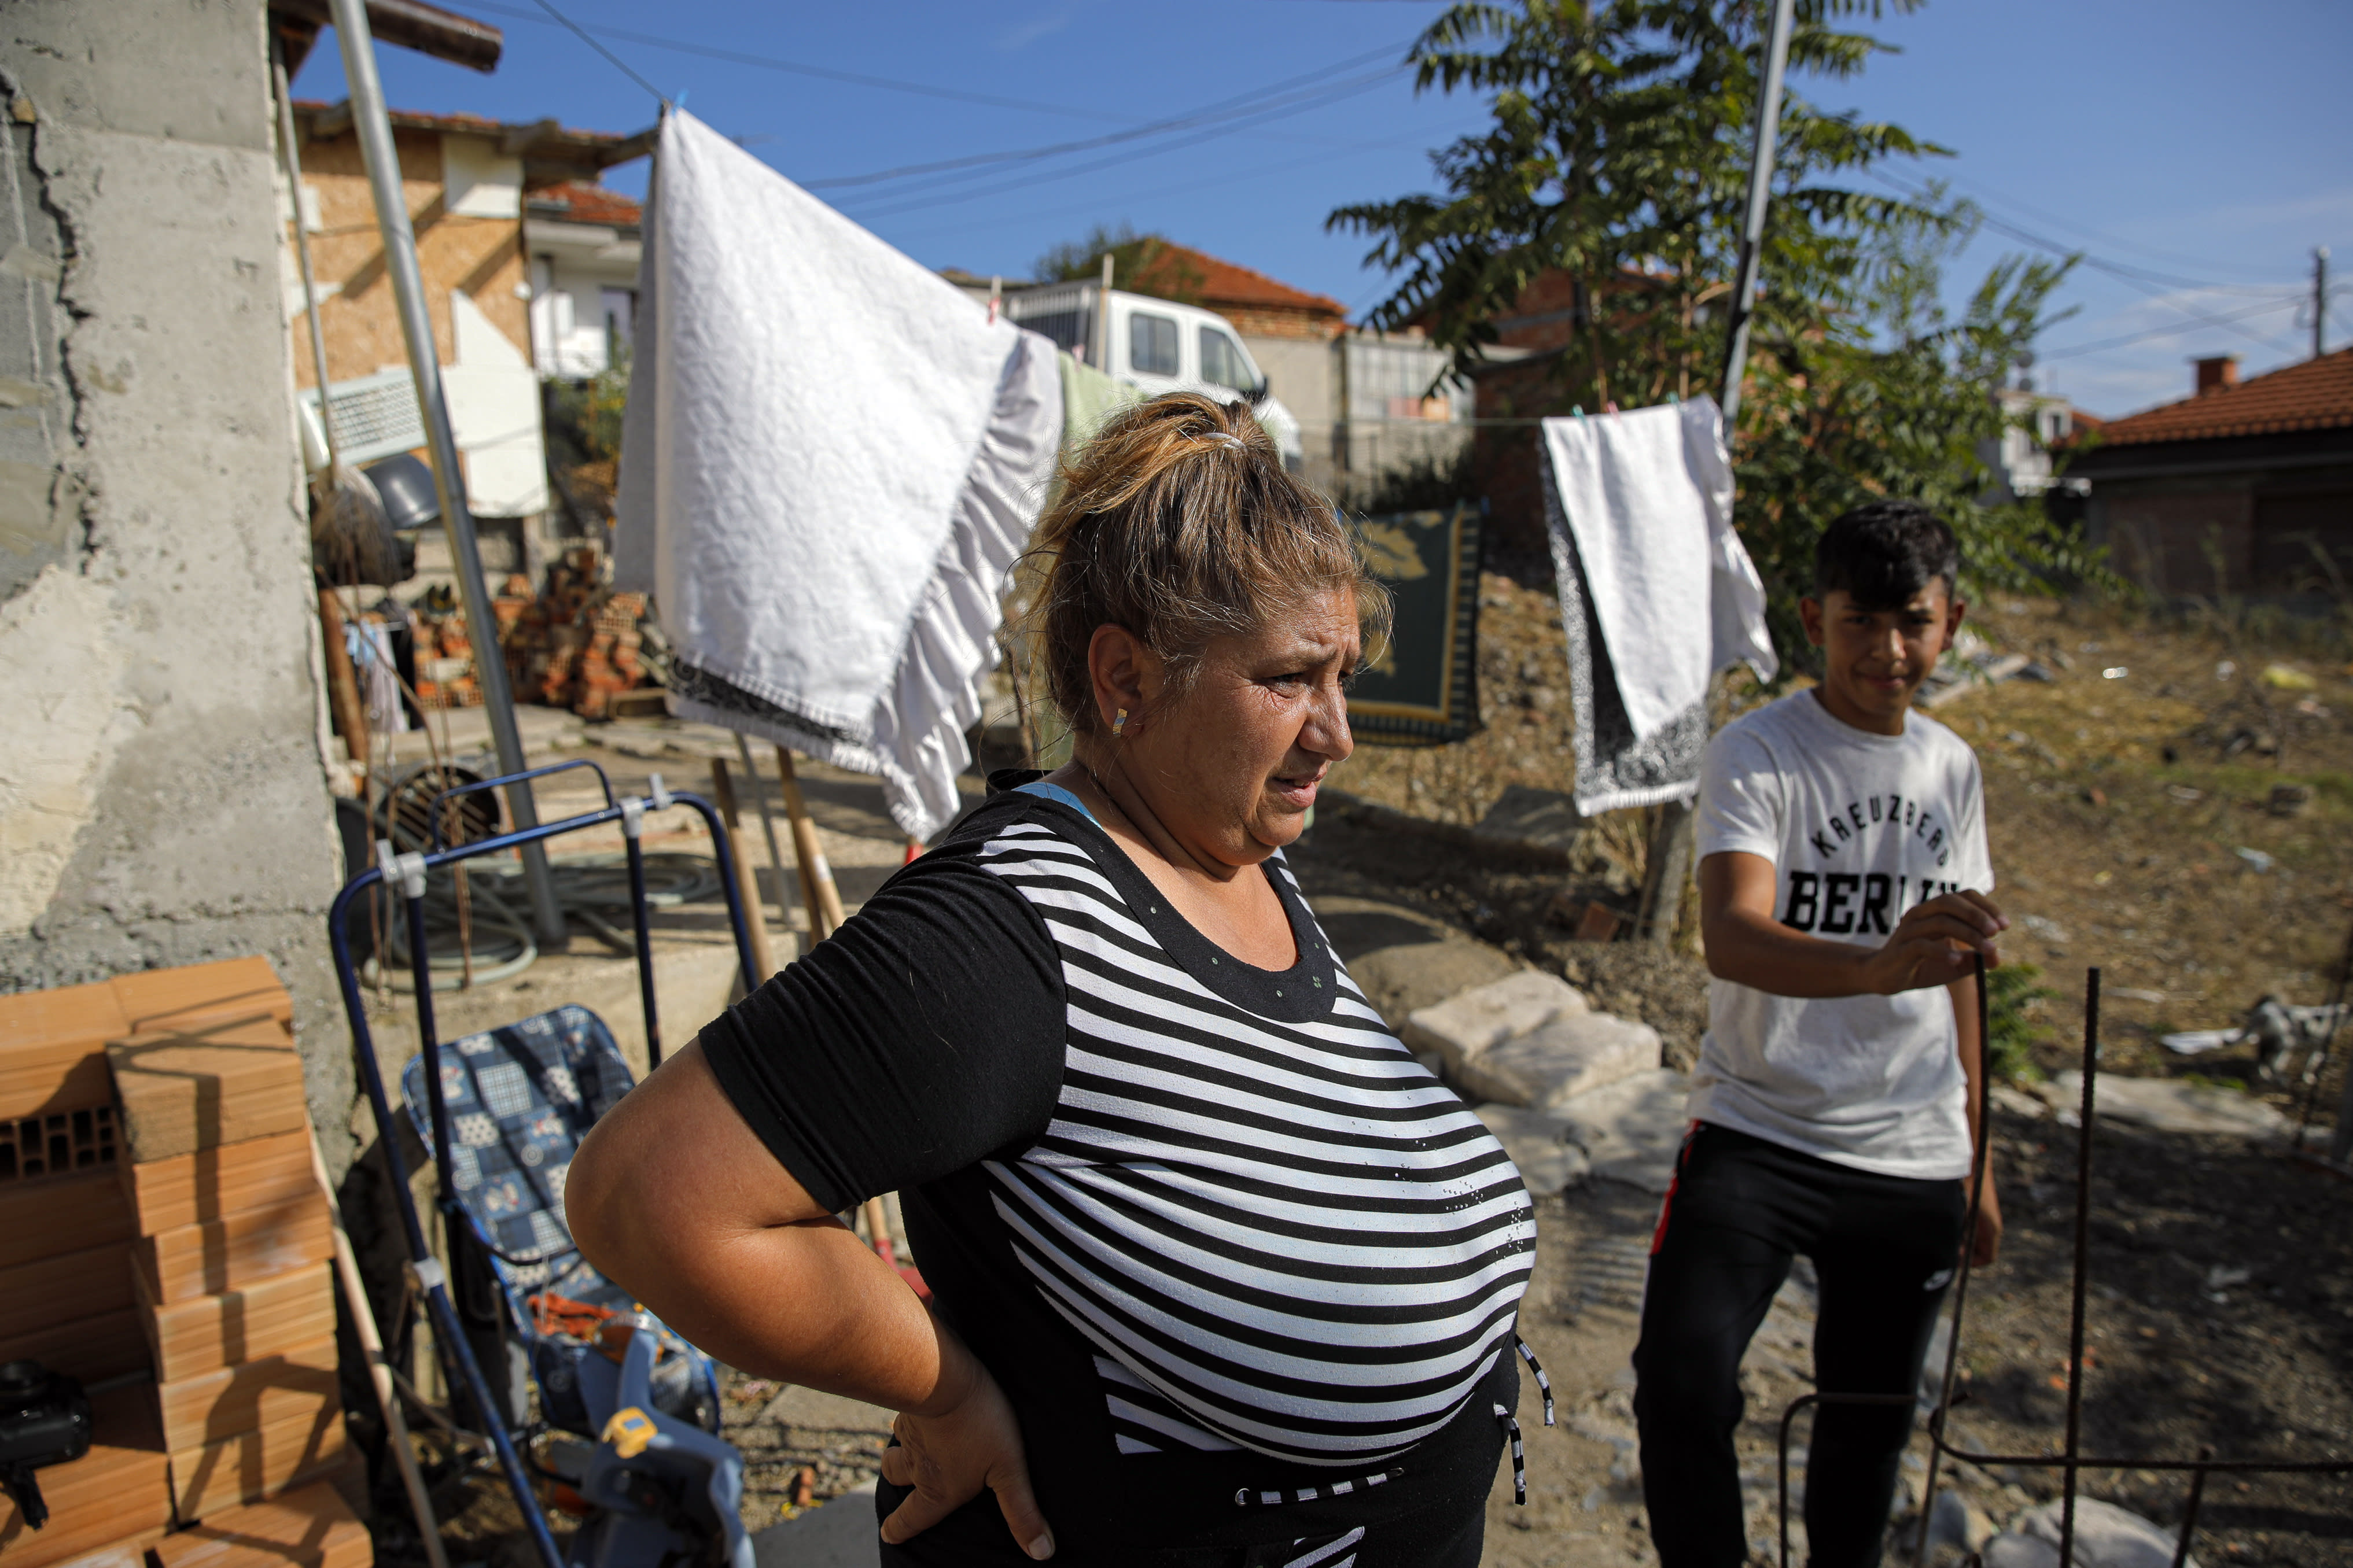 "Azime Ali Topchu, 48, a Bulgarian Roma woman, stands in her back yard in a village on the outskirts of Burgas, Bulgaria, Monday, Sept. 28, 2020. Human rights activists and experts say local officials in several countries with significant Roma populations have used the pandemic to unlawfully target the minority group, which is Europe's largest and has faced centuries of severe discrimination. Topchu said that the police-enforced lockdown of her village in Burgas, on Bulgaria's Black Sea Coast, made her family ""really sad."" (AP Photo/Vadim Ghirda)"